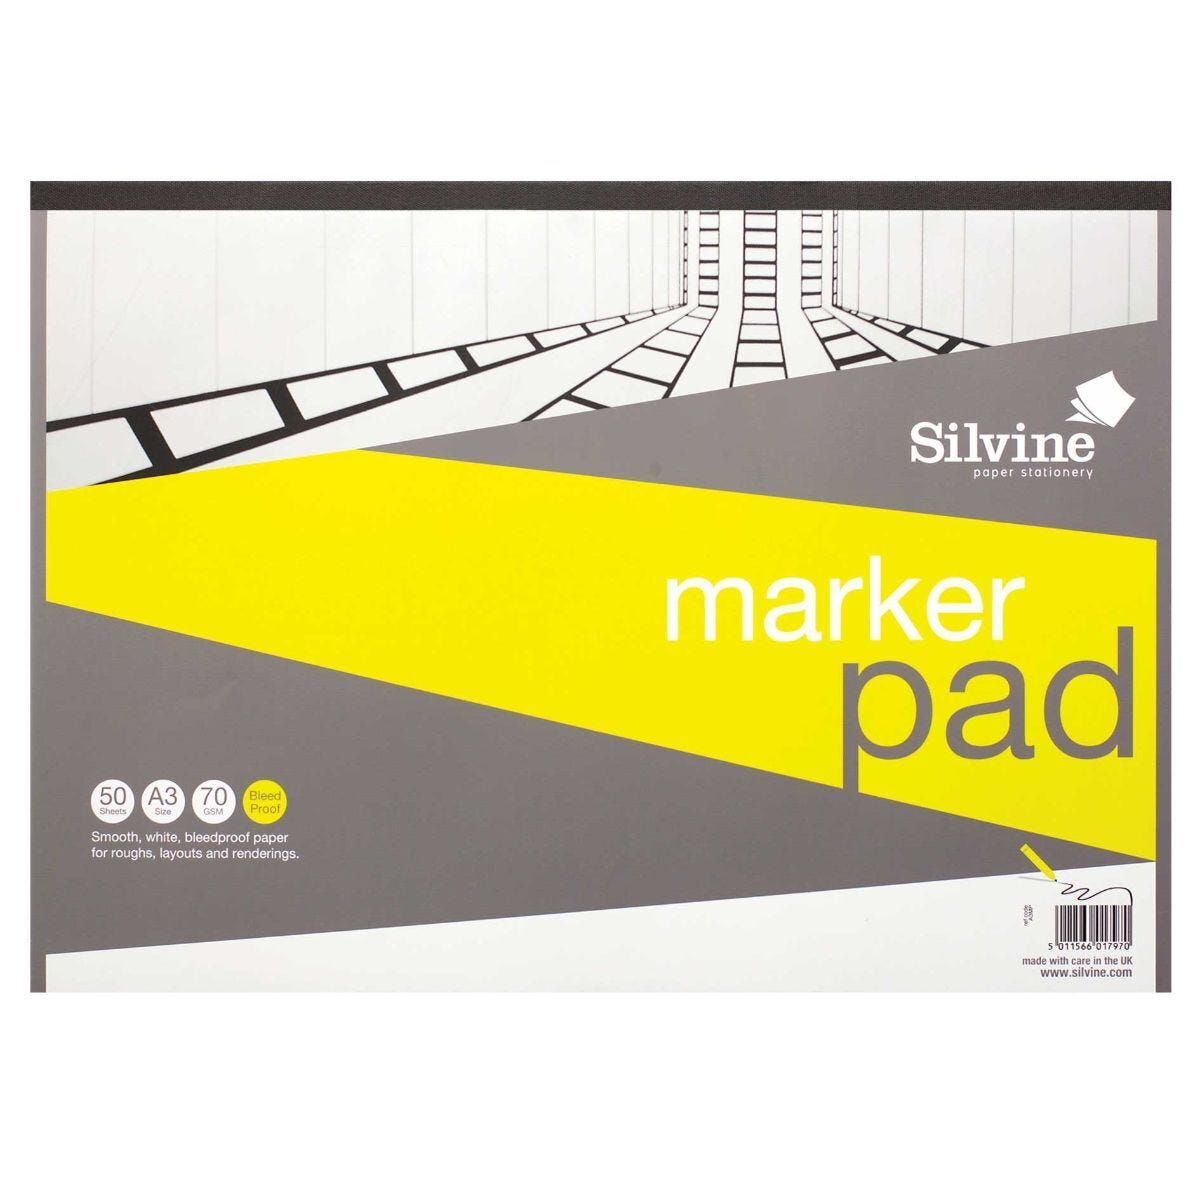 Silvine A3 Marker Bleed Proof Pad 50 Sheets 70gsm